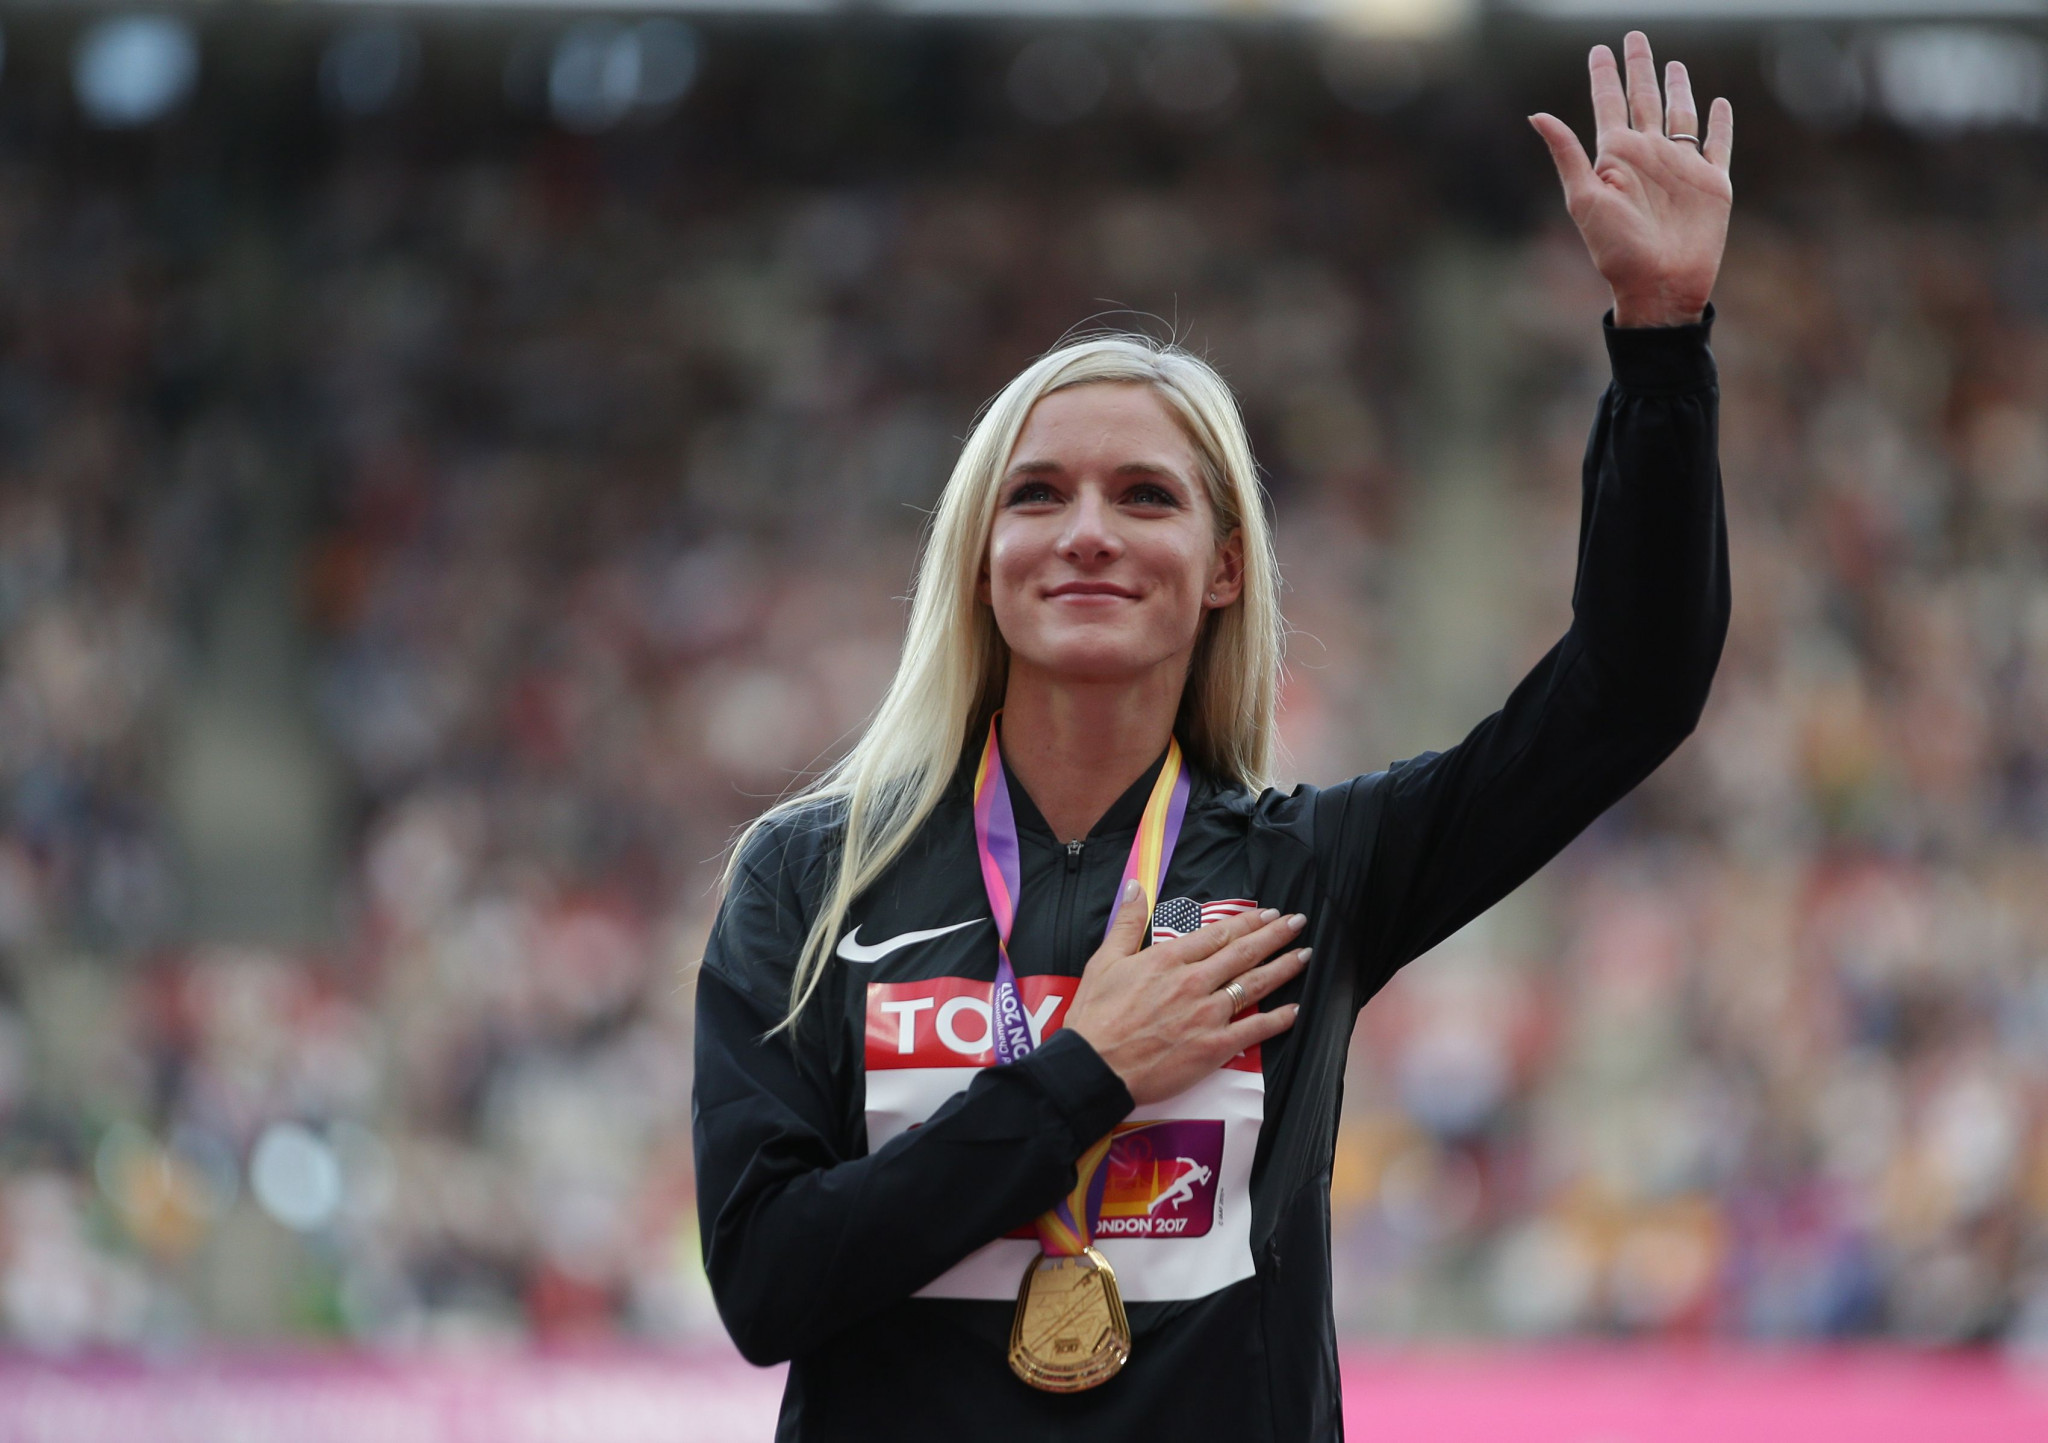 World 3,000m steeplechase champion Emma Coburn has backed Linda Helleland to be the next President of WADA ©Getty Images